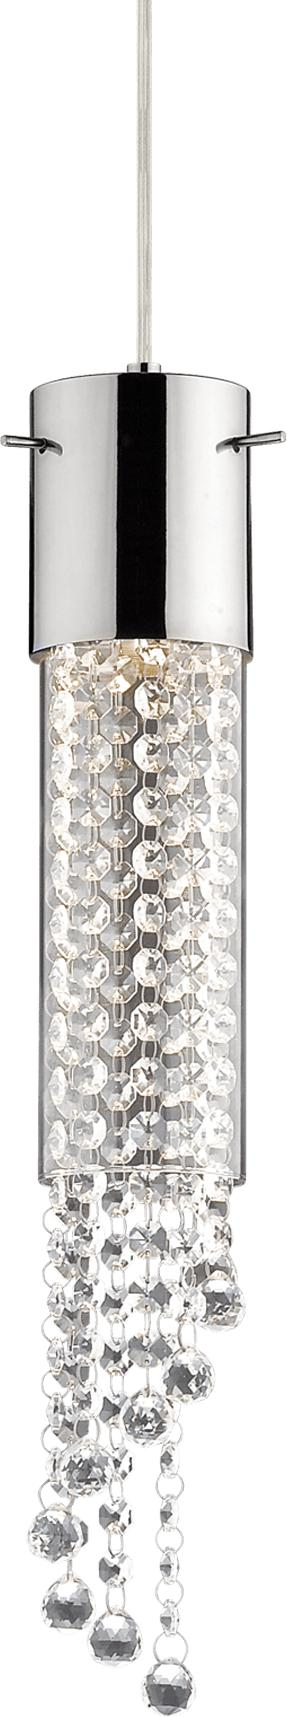 Ideal lux LED gocce sp1 Pendelleuchten 5W 89669